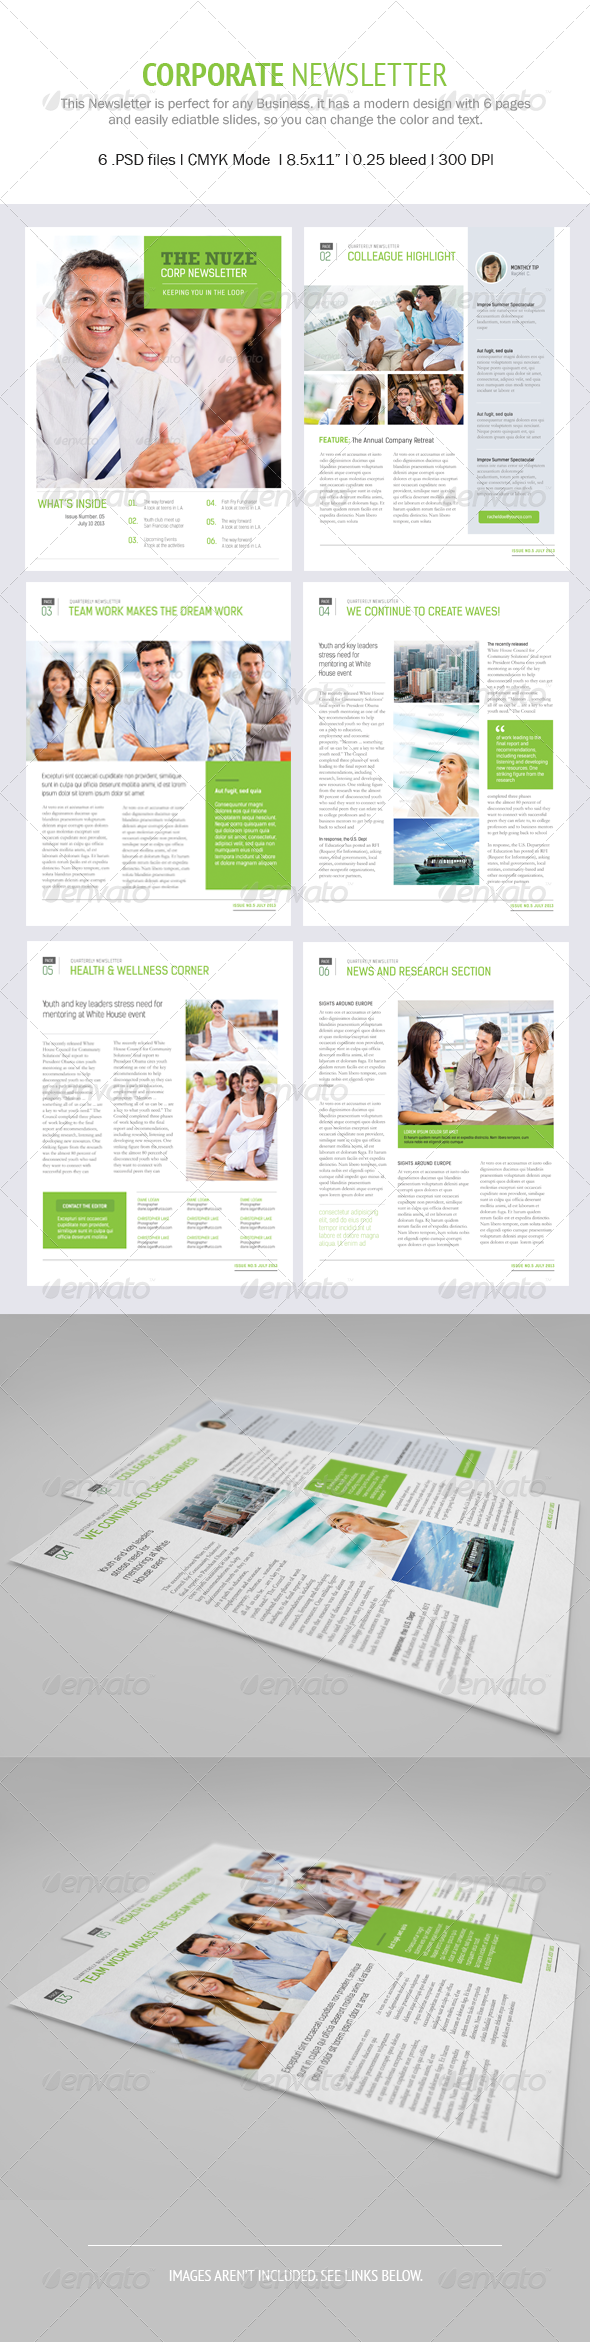 GraphicRiver Nuze Corporate Newsletter 5231611